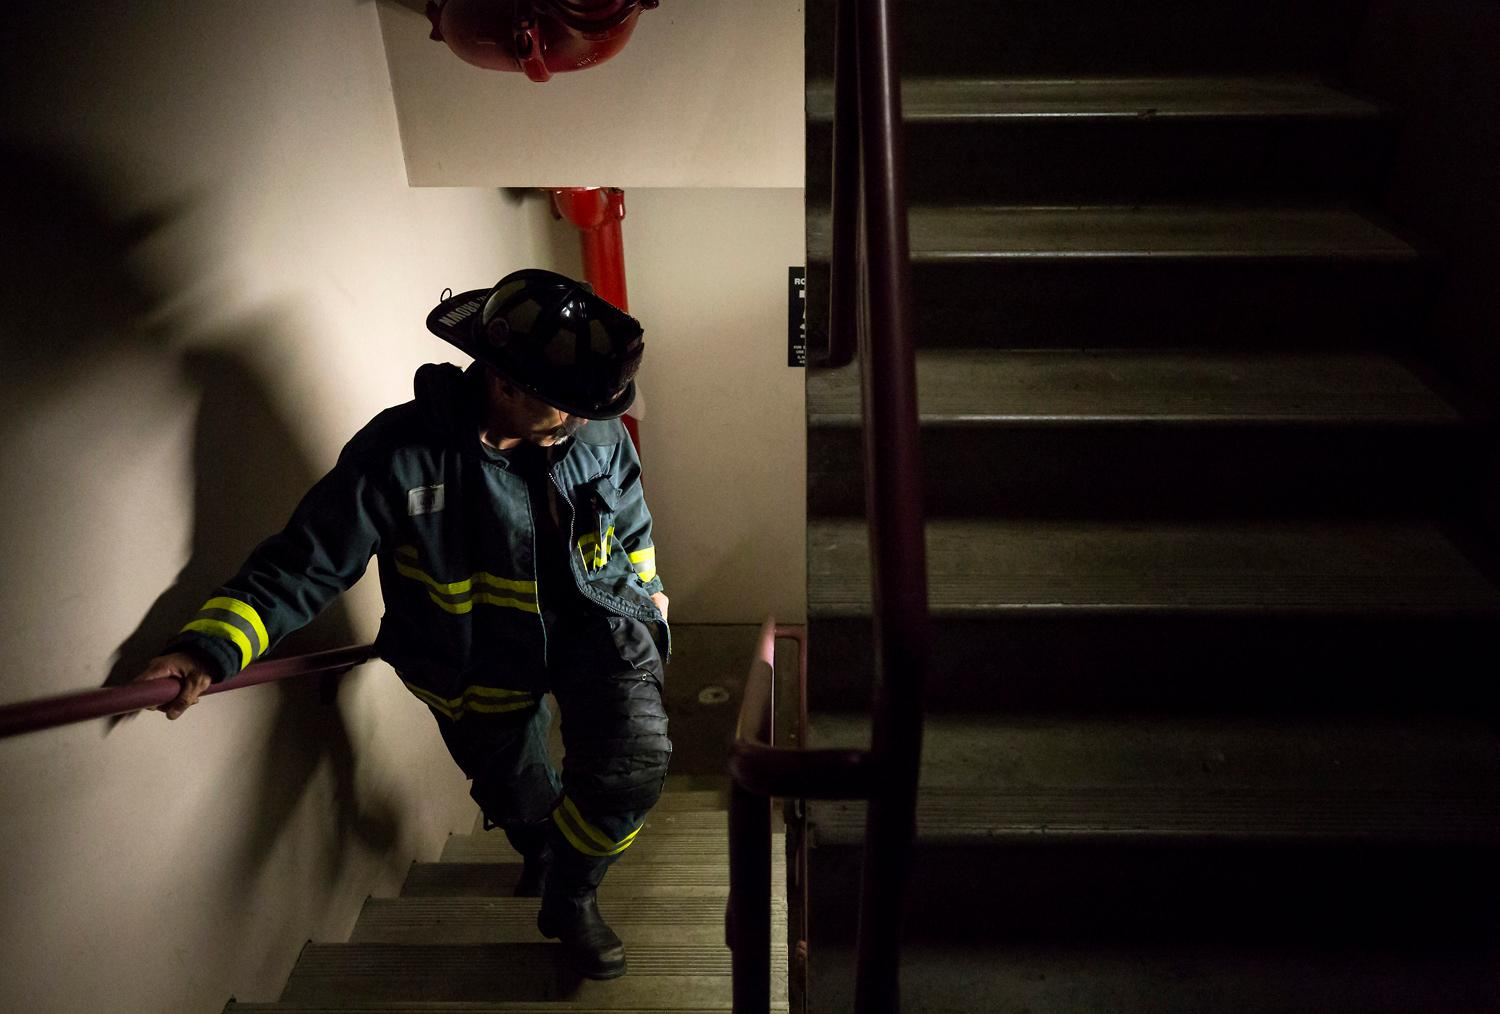 Rich Brown, lead ambassador and firefighter from Boise, Idaho, does a training climb for the Scott Firefight Stairclimb that benefits the Leukemia & Lymphoma Society on Friday, March 9, 2018. 2,000 firefighters will climb the 69 floors (1,356 stairs!) on Sunday to the Sky View Observatory of the Columbia Tower. (To donate to this cause, please visit www.firefighterstairclimb.org. (Sy Bean / Seattle Refined)